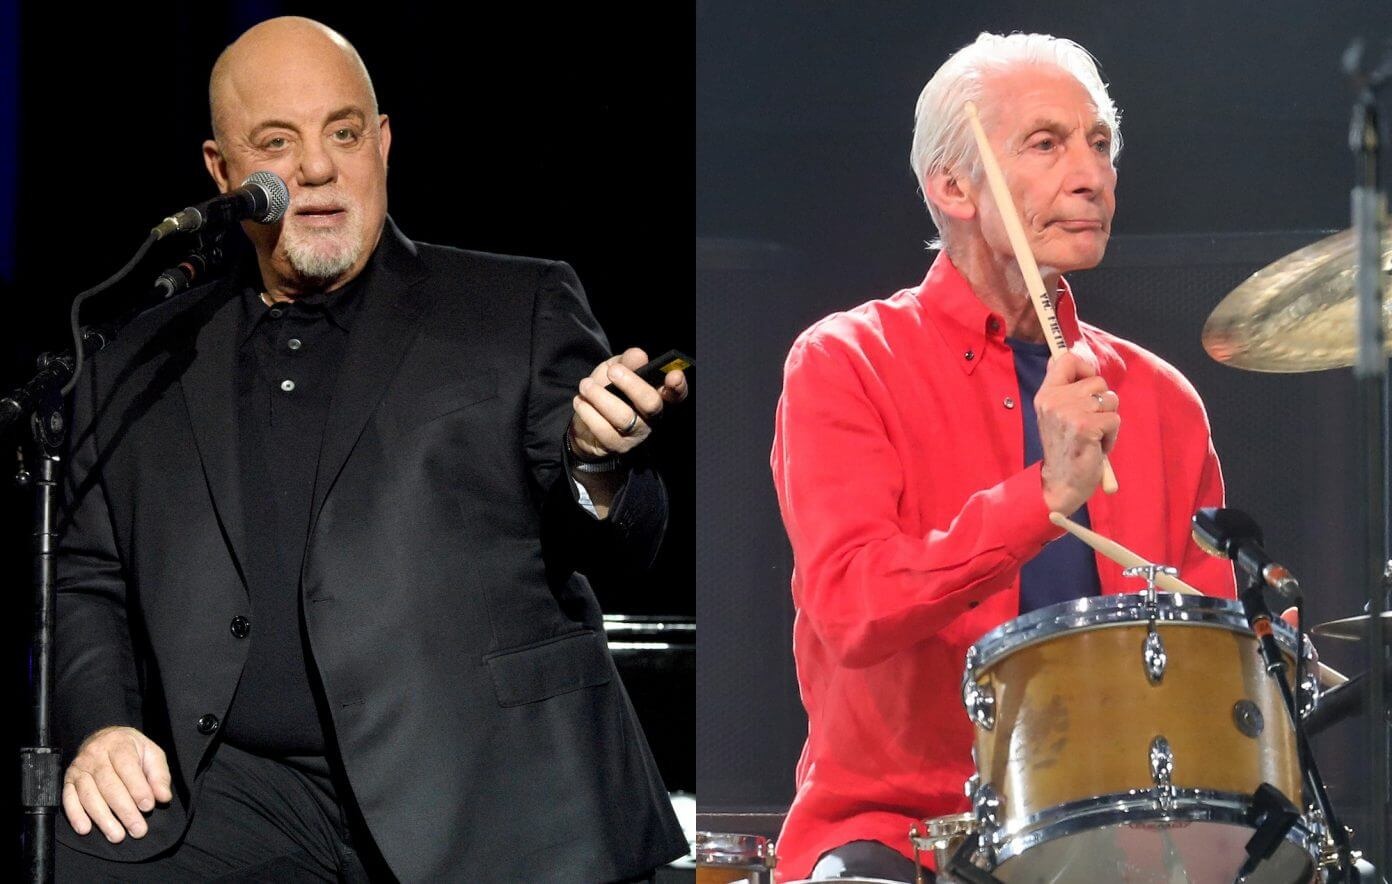 Billy Joel and the Rolling Stones' Charlie Watts.